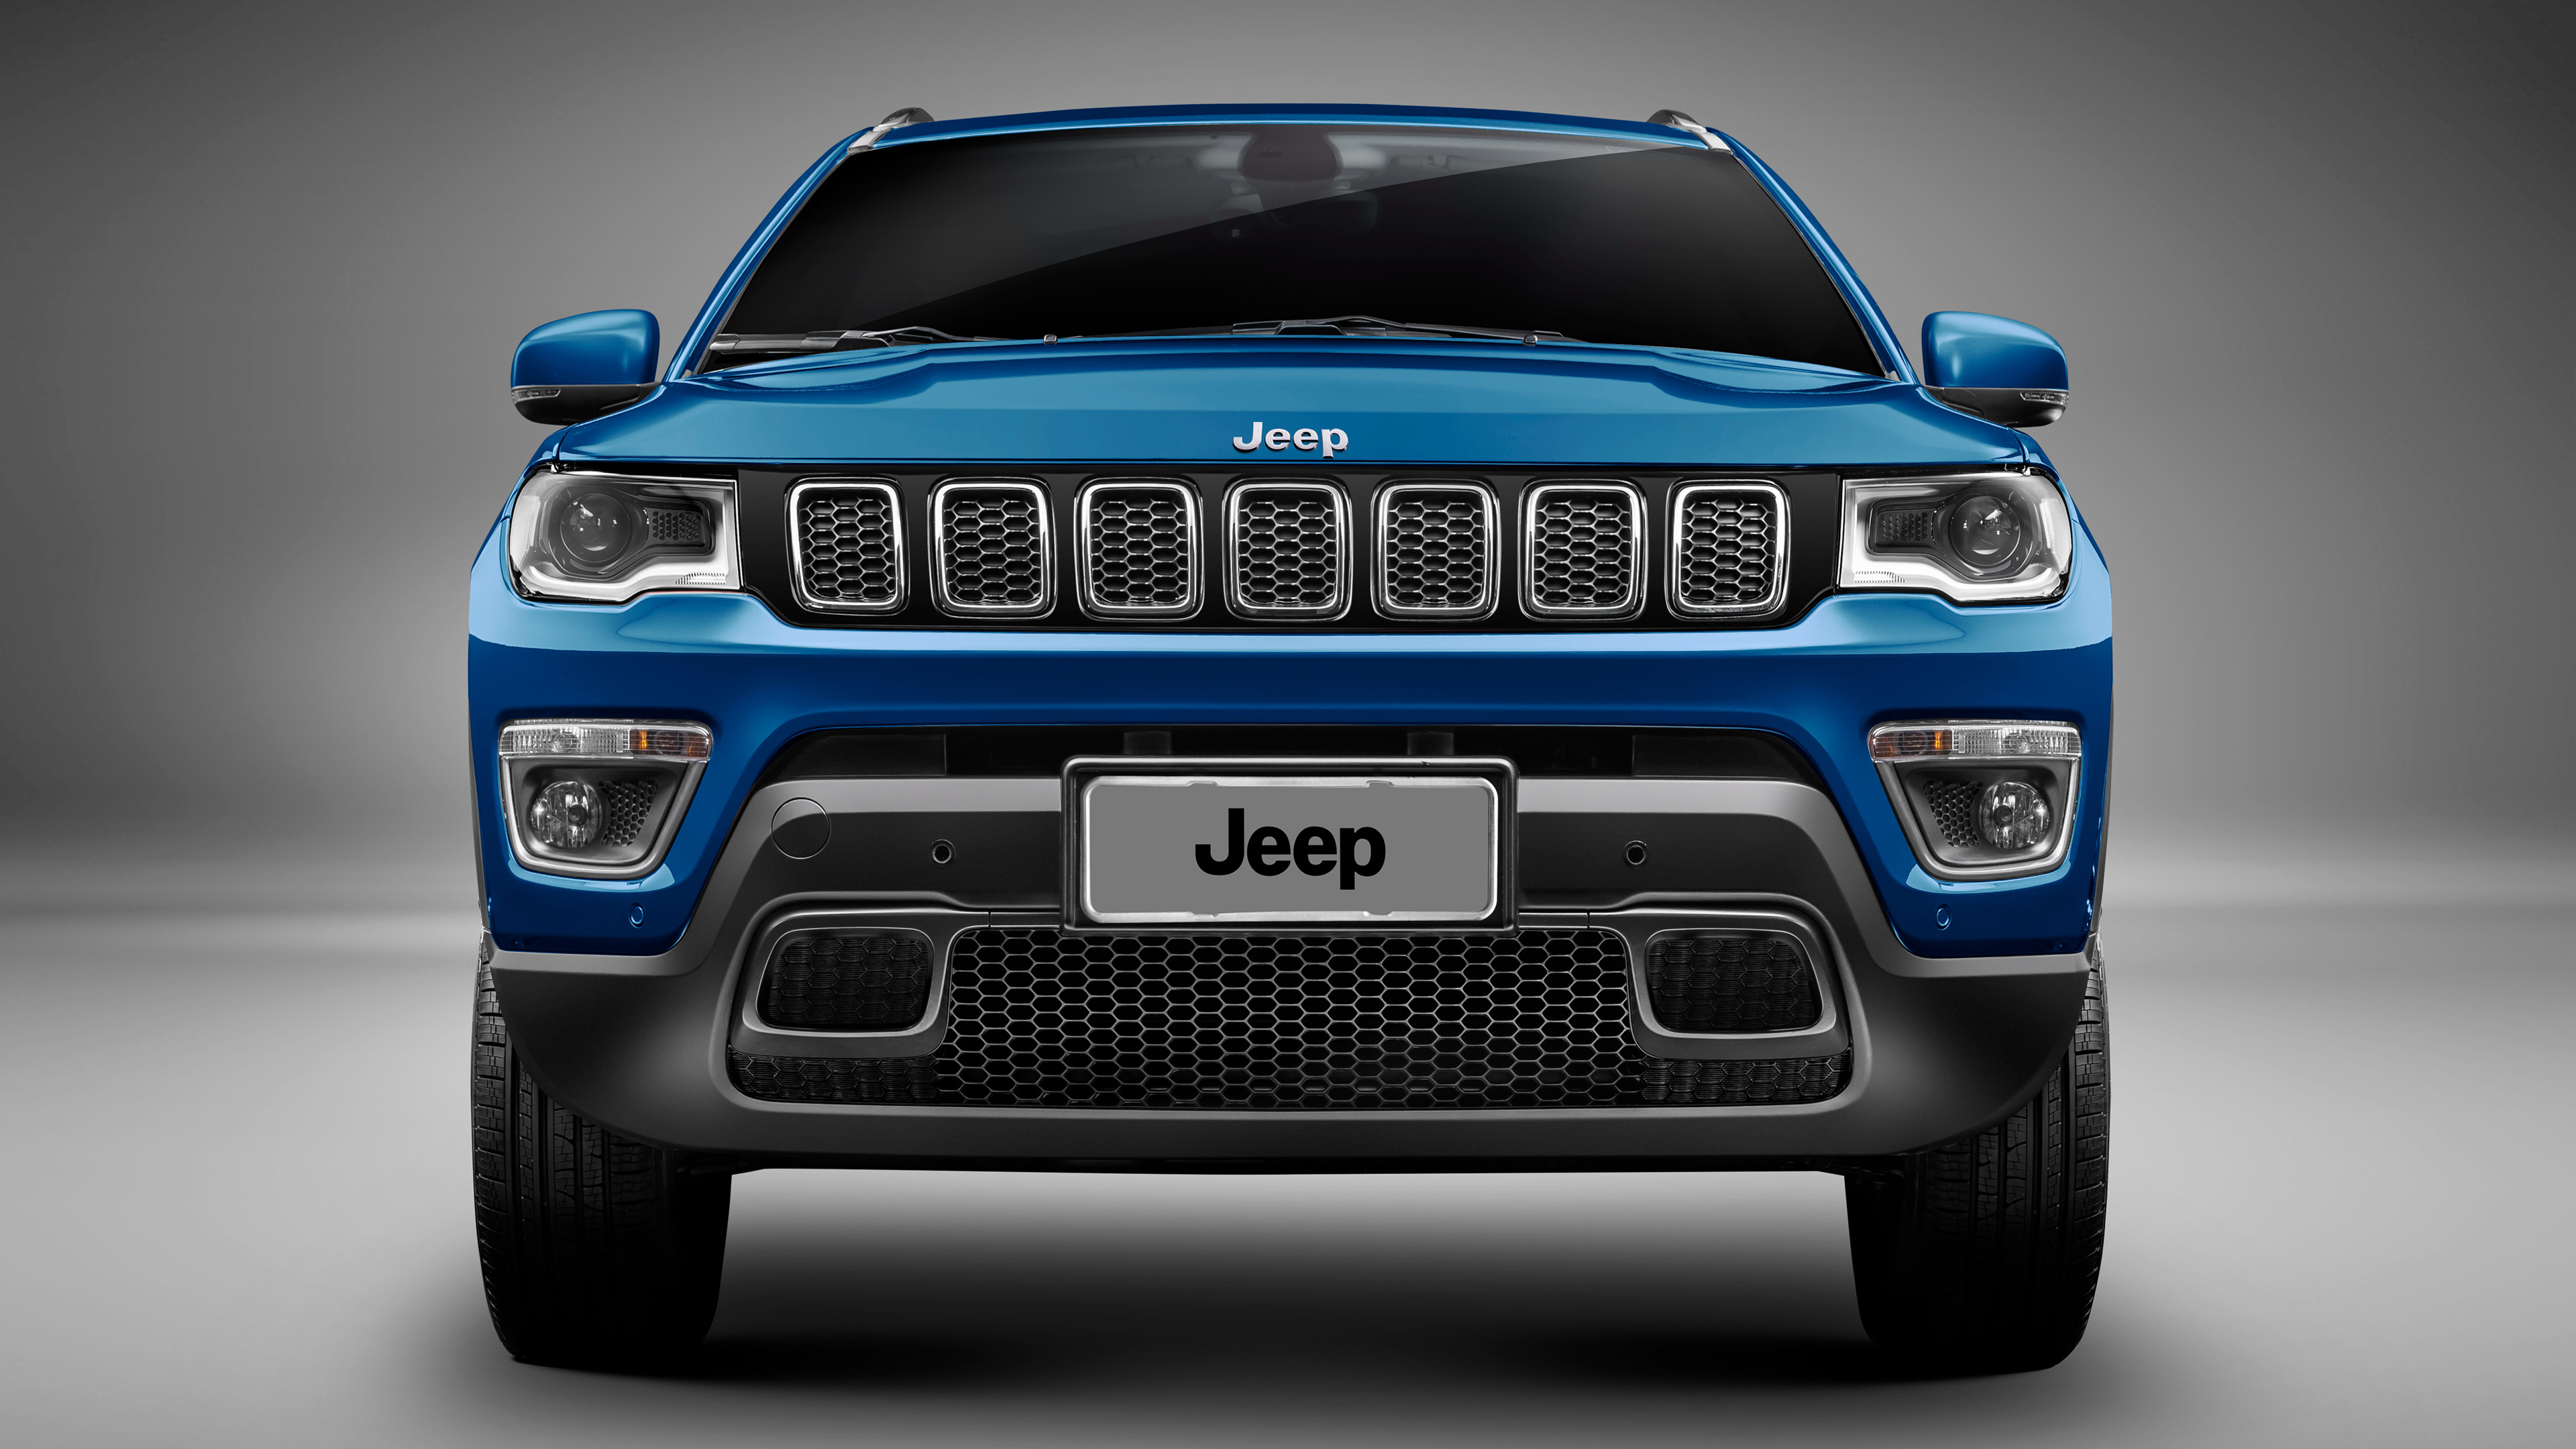 Jeep Wallpapers, Photos And Desktop Backgrounds Up To 8K